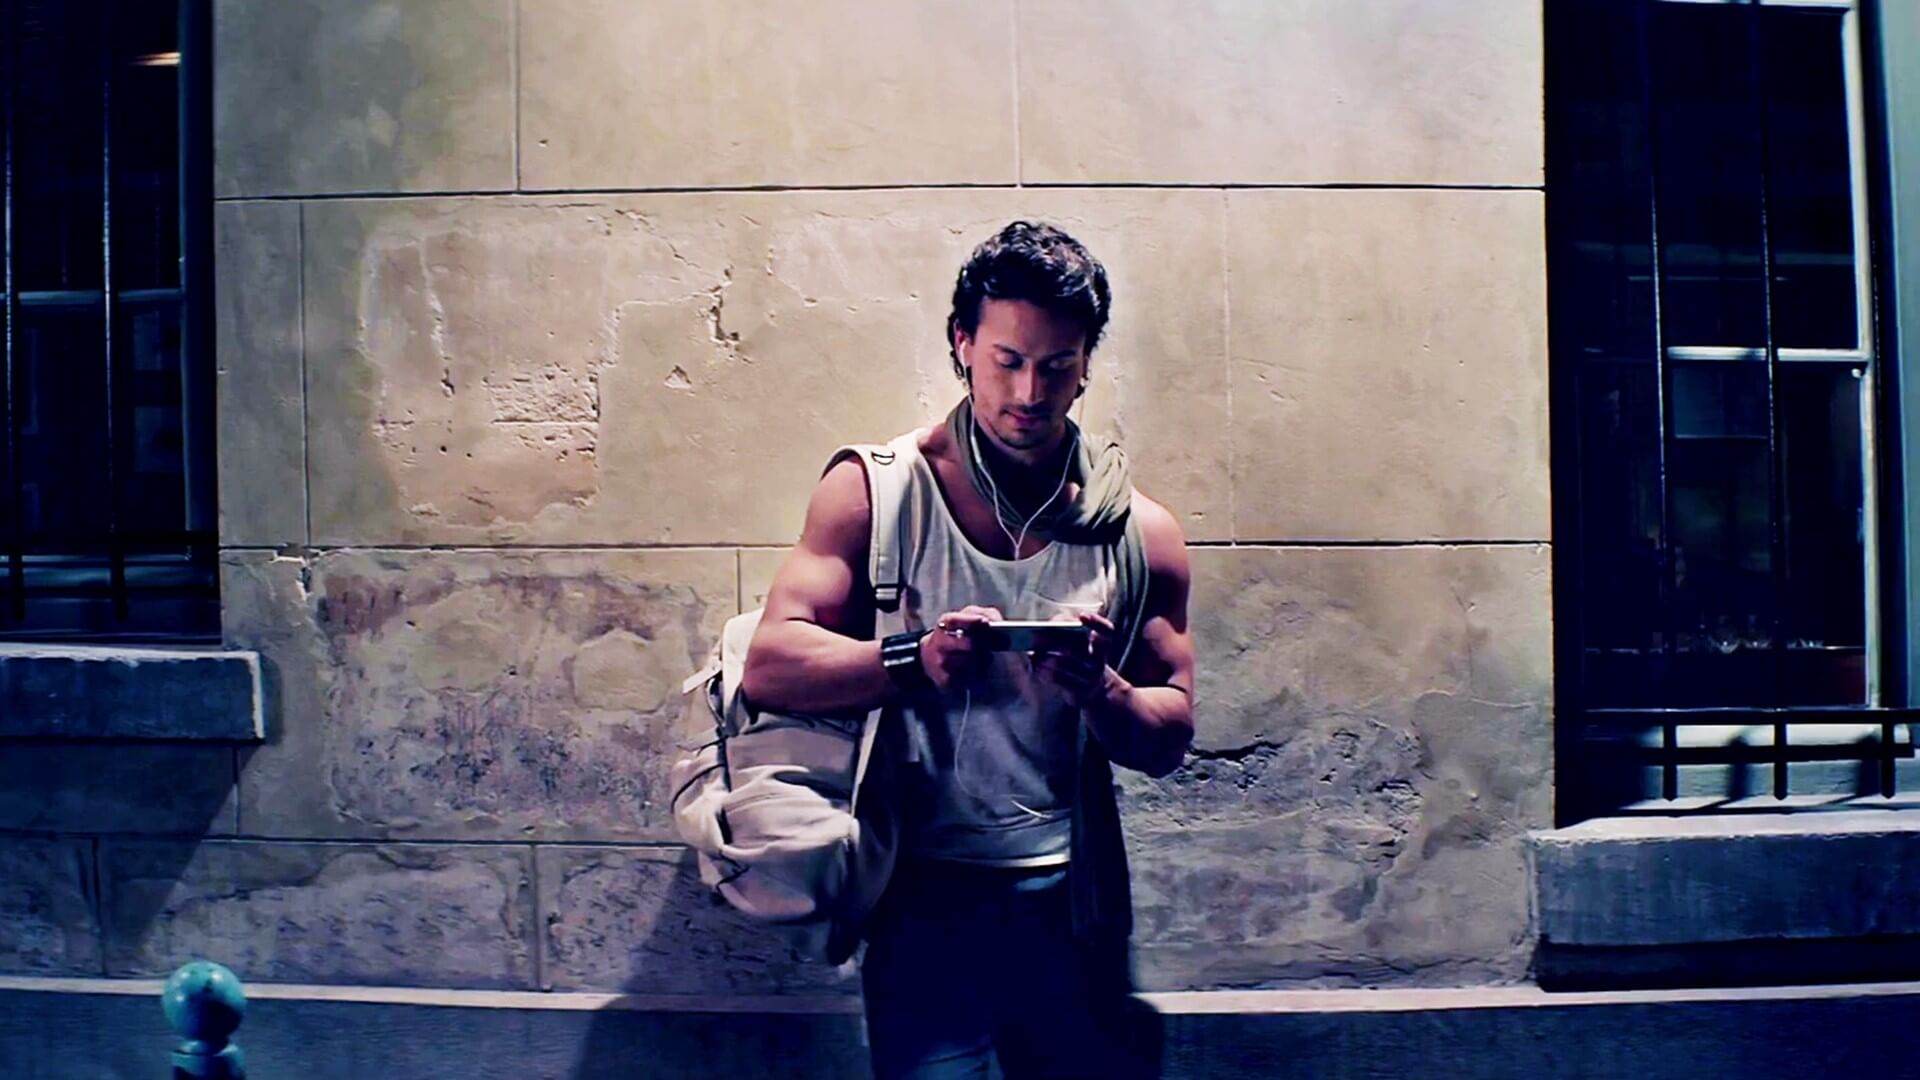 Tiger Shroff Age, Photos(image), Song, Movie, Height, Girlfriend, Sister, Date Of Birth, Net Worth, Biography, Education, Awards, Instagram, Twitter, Facebook, Wiki, Imdb, Youtube (85)